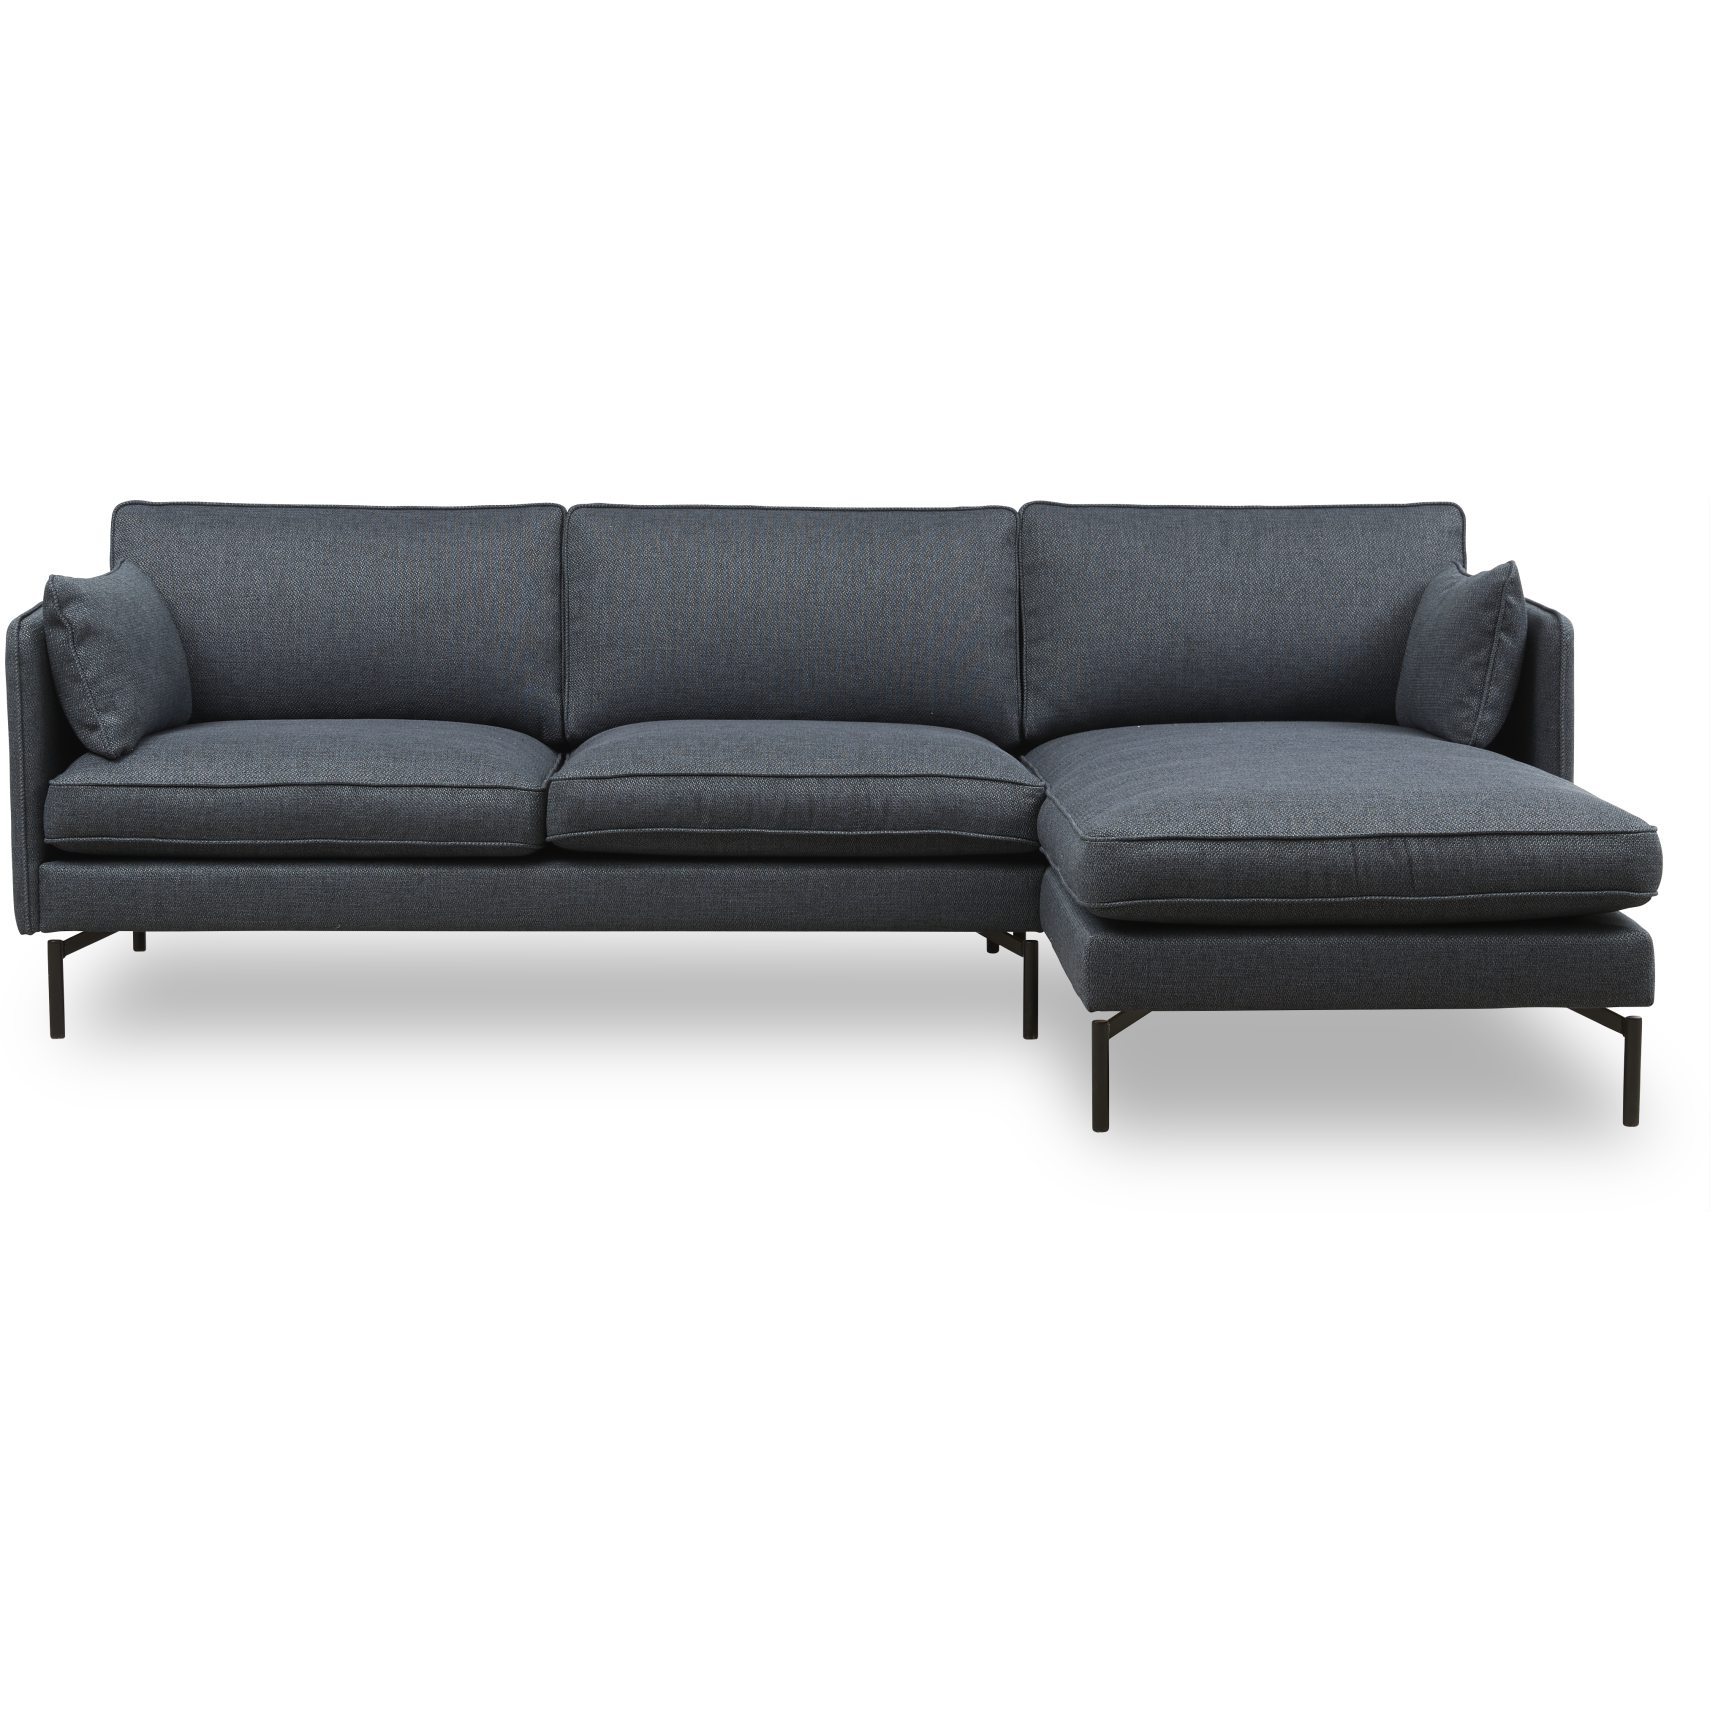 Tebis Sofa med chaiselong - Side 148 Blue stof og ben i sort metal